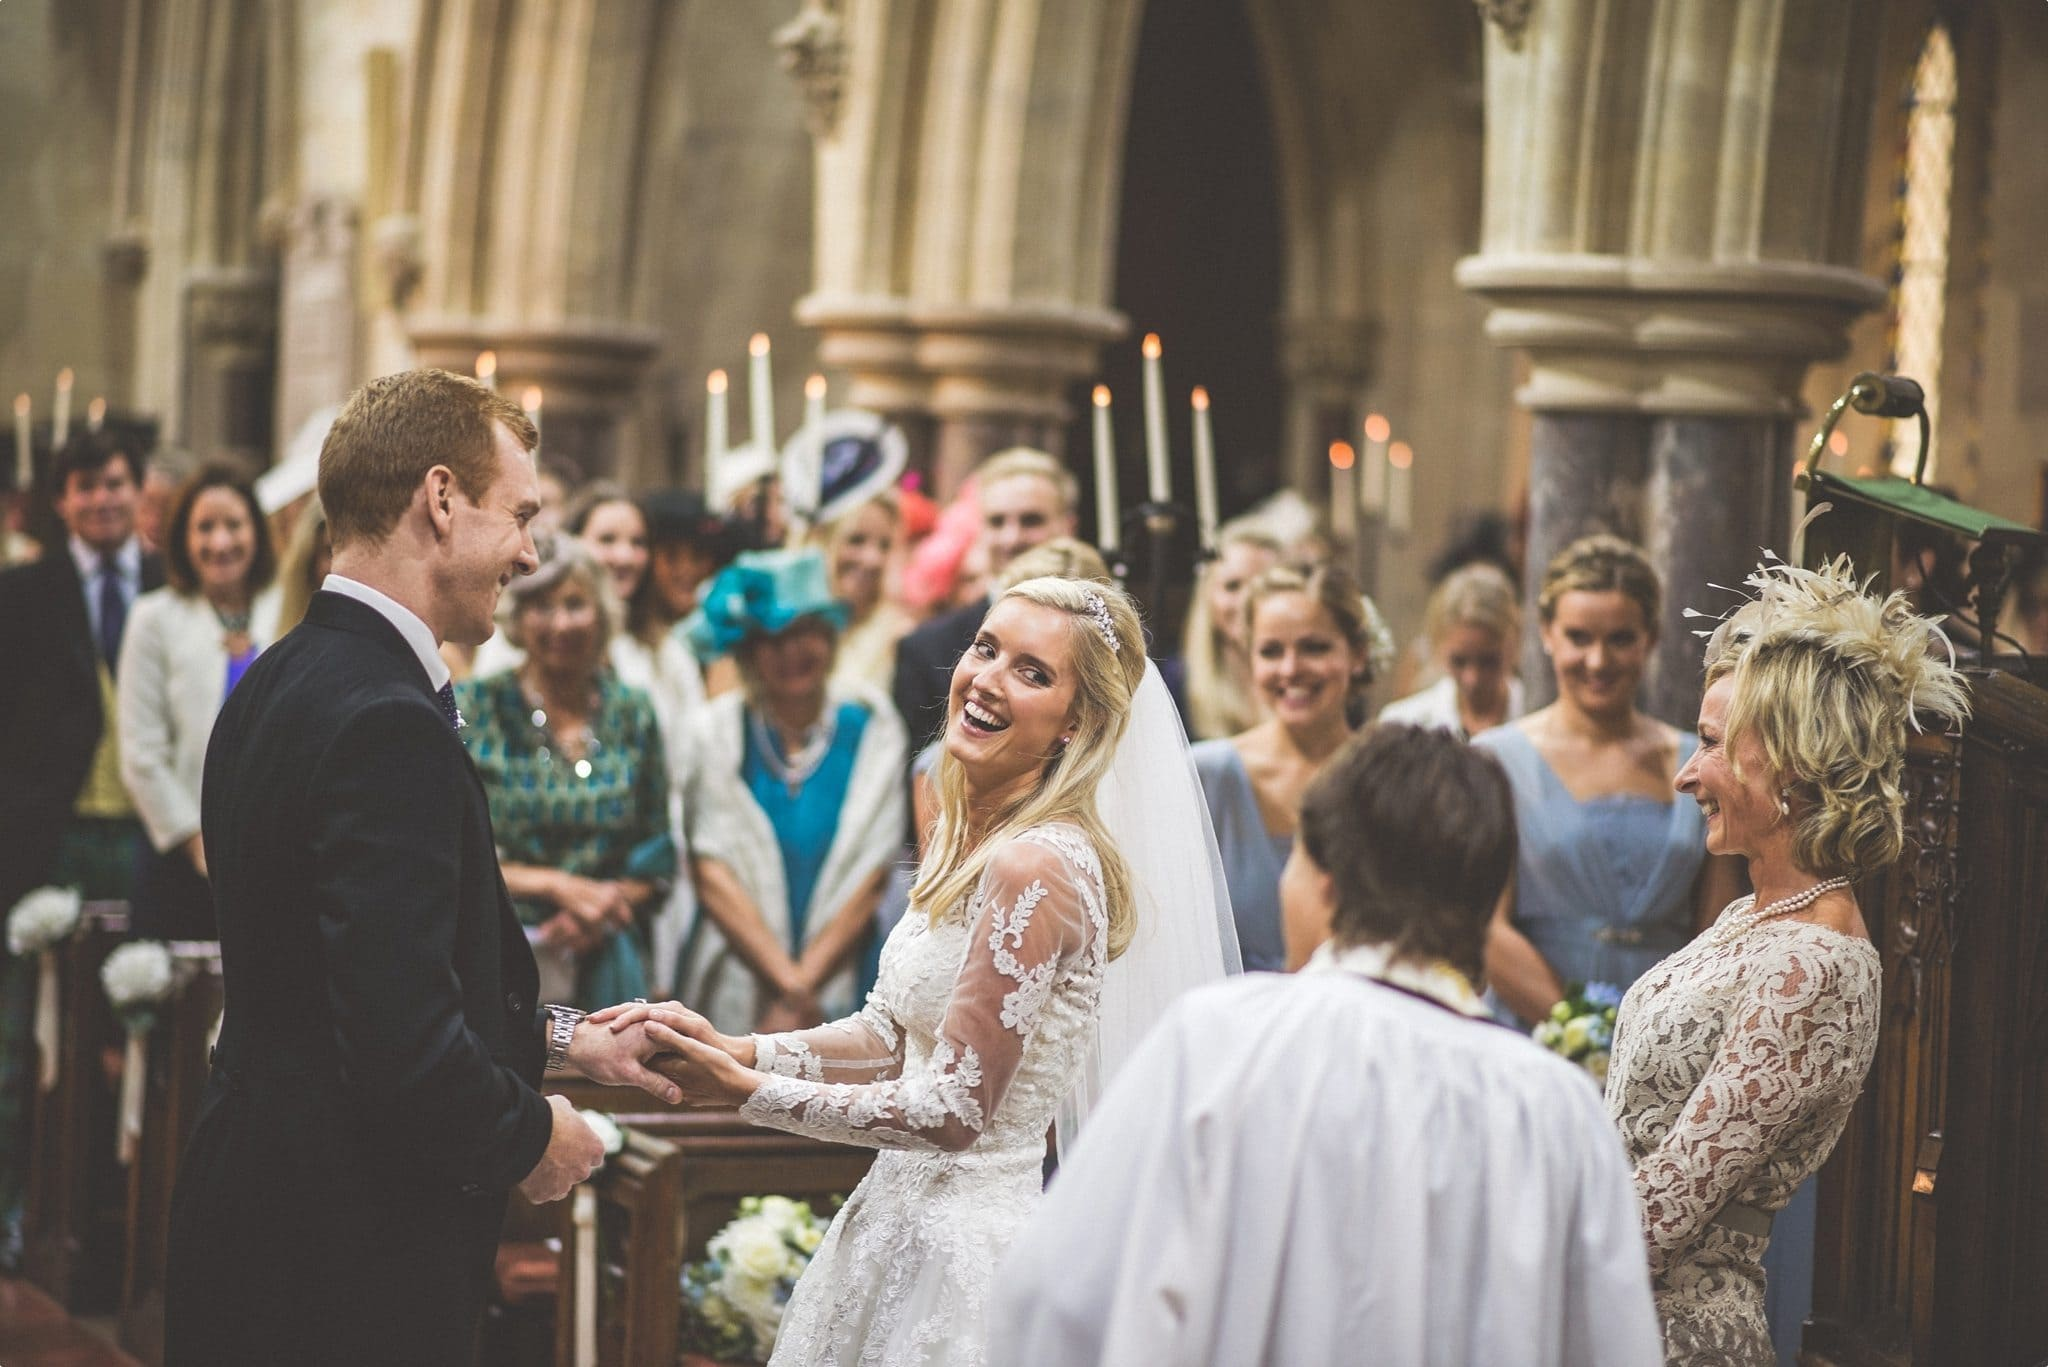 st-audries-park-wedding-maria-assia-photography-319